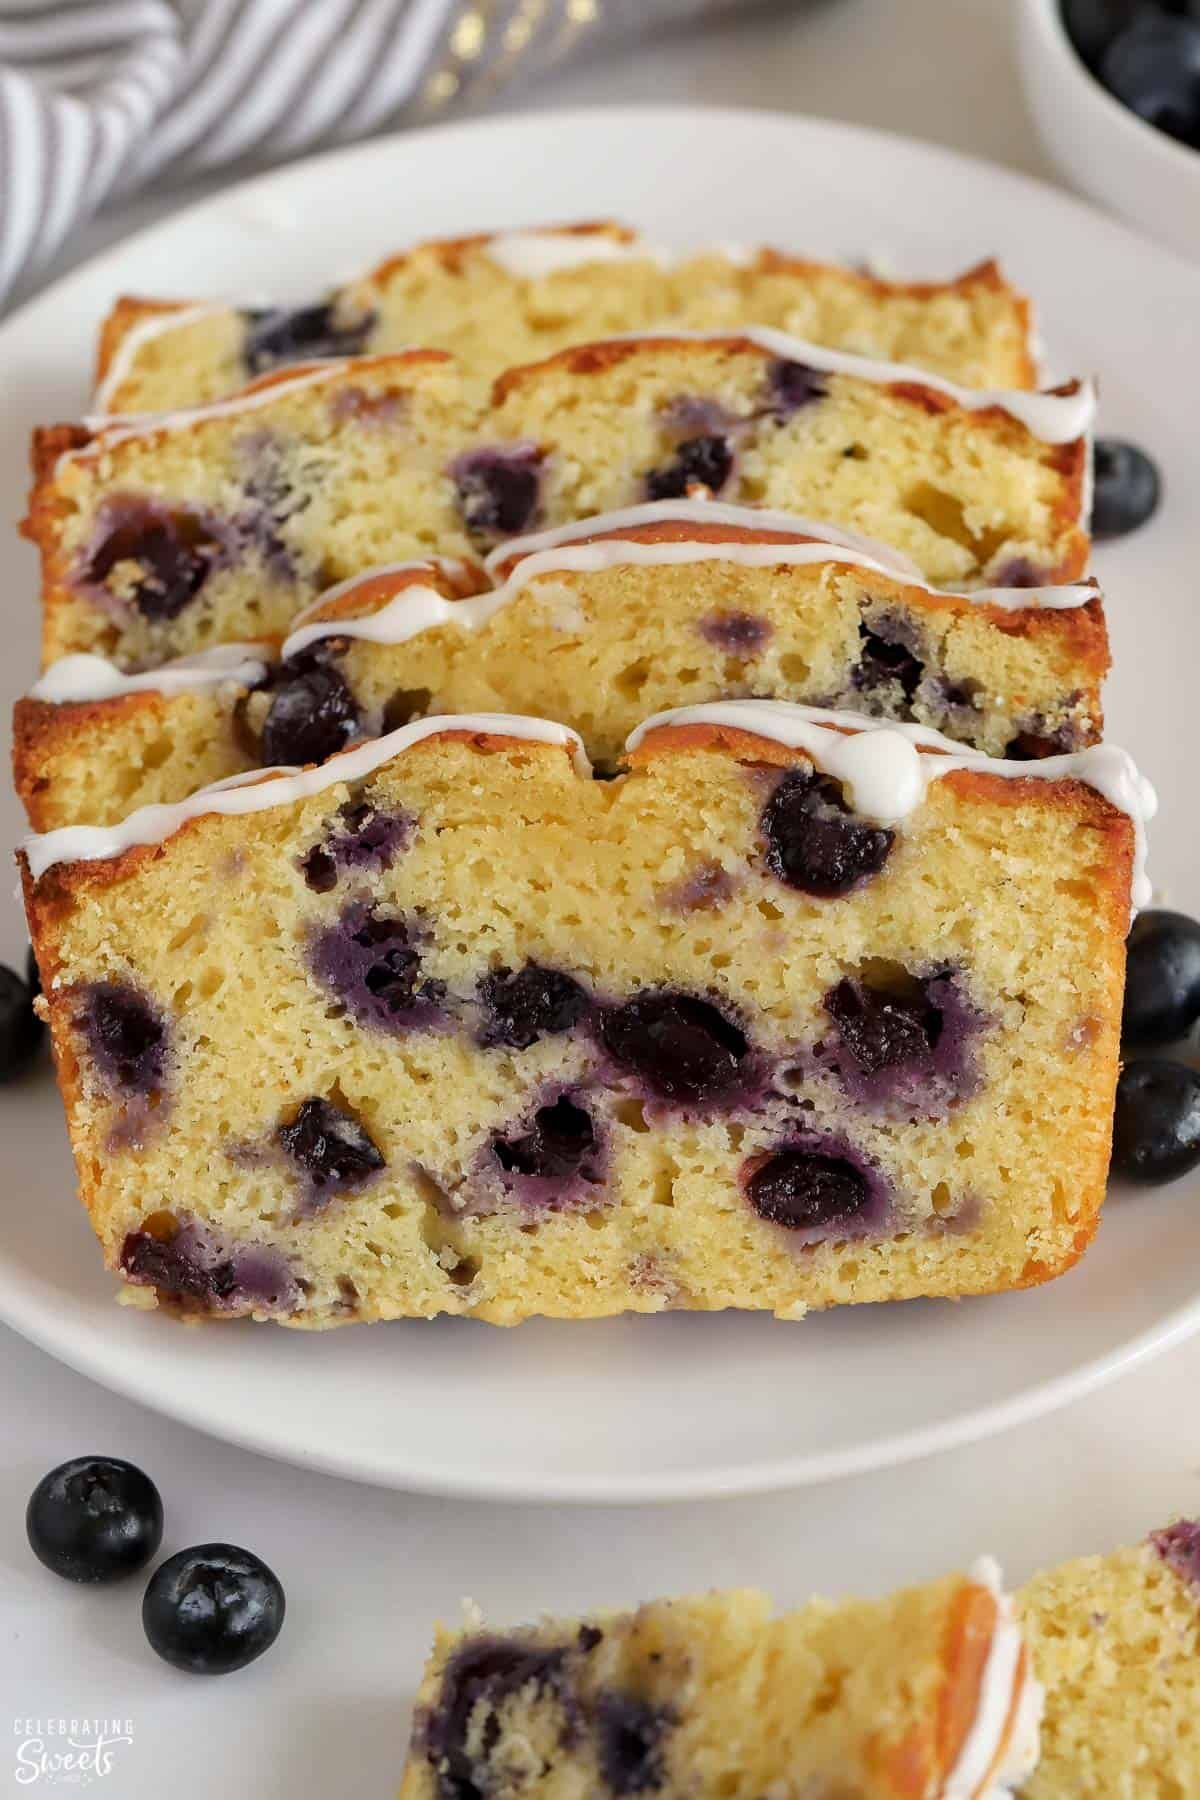 Four slices of blueberry bread on a white plate.